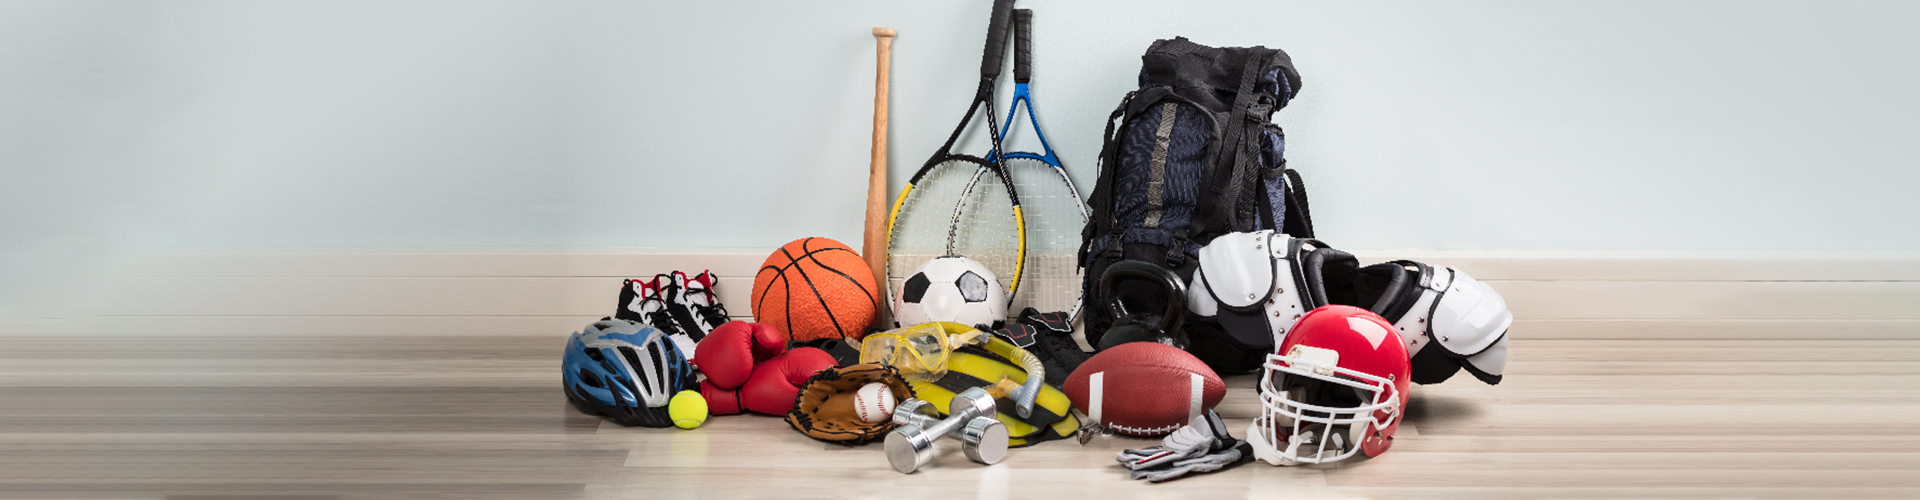 014. Sports Equipment's, tools and Sports wear